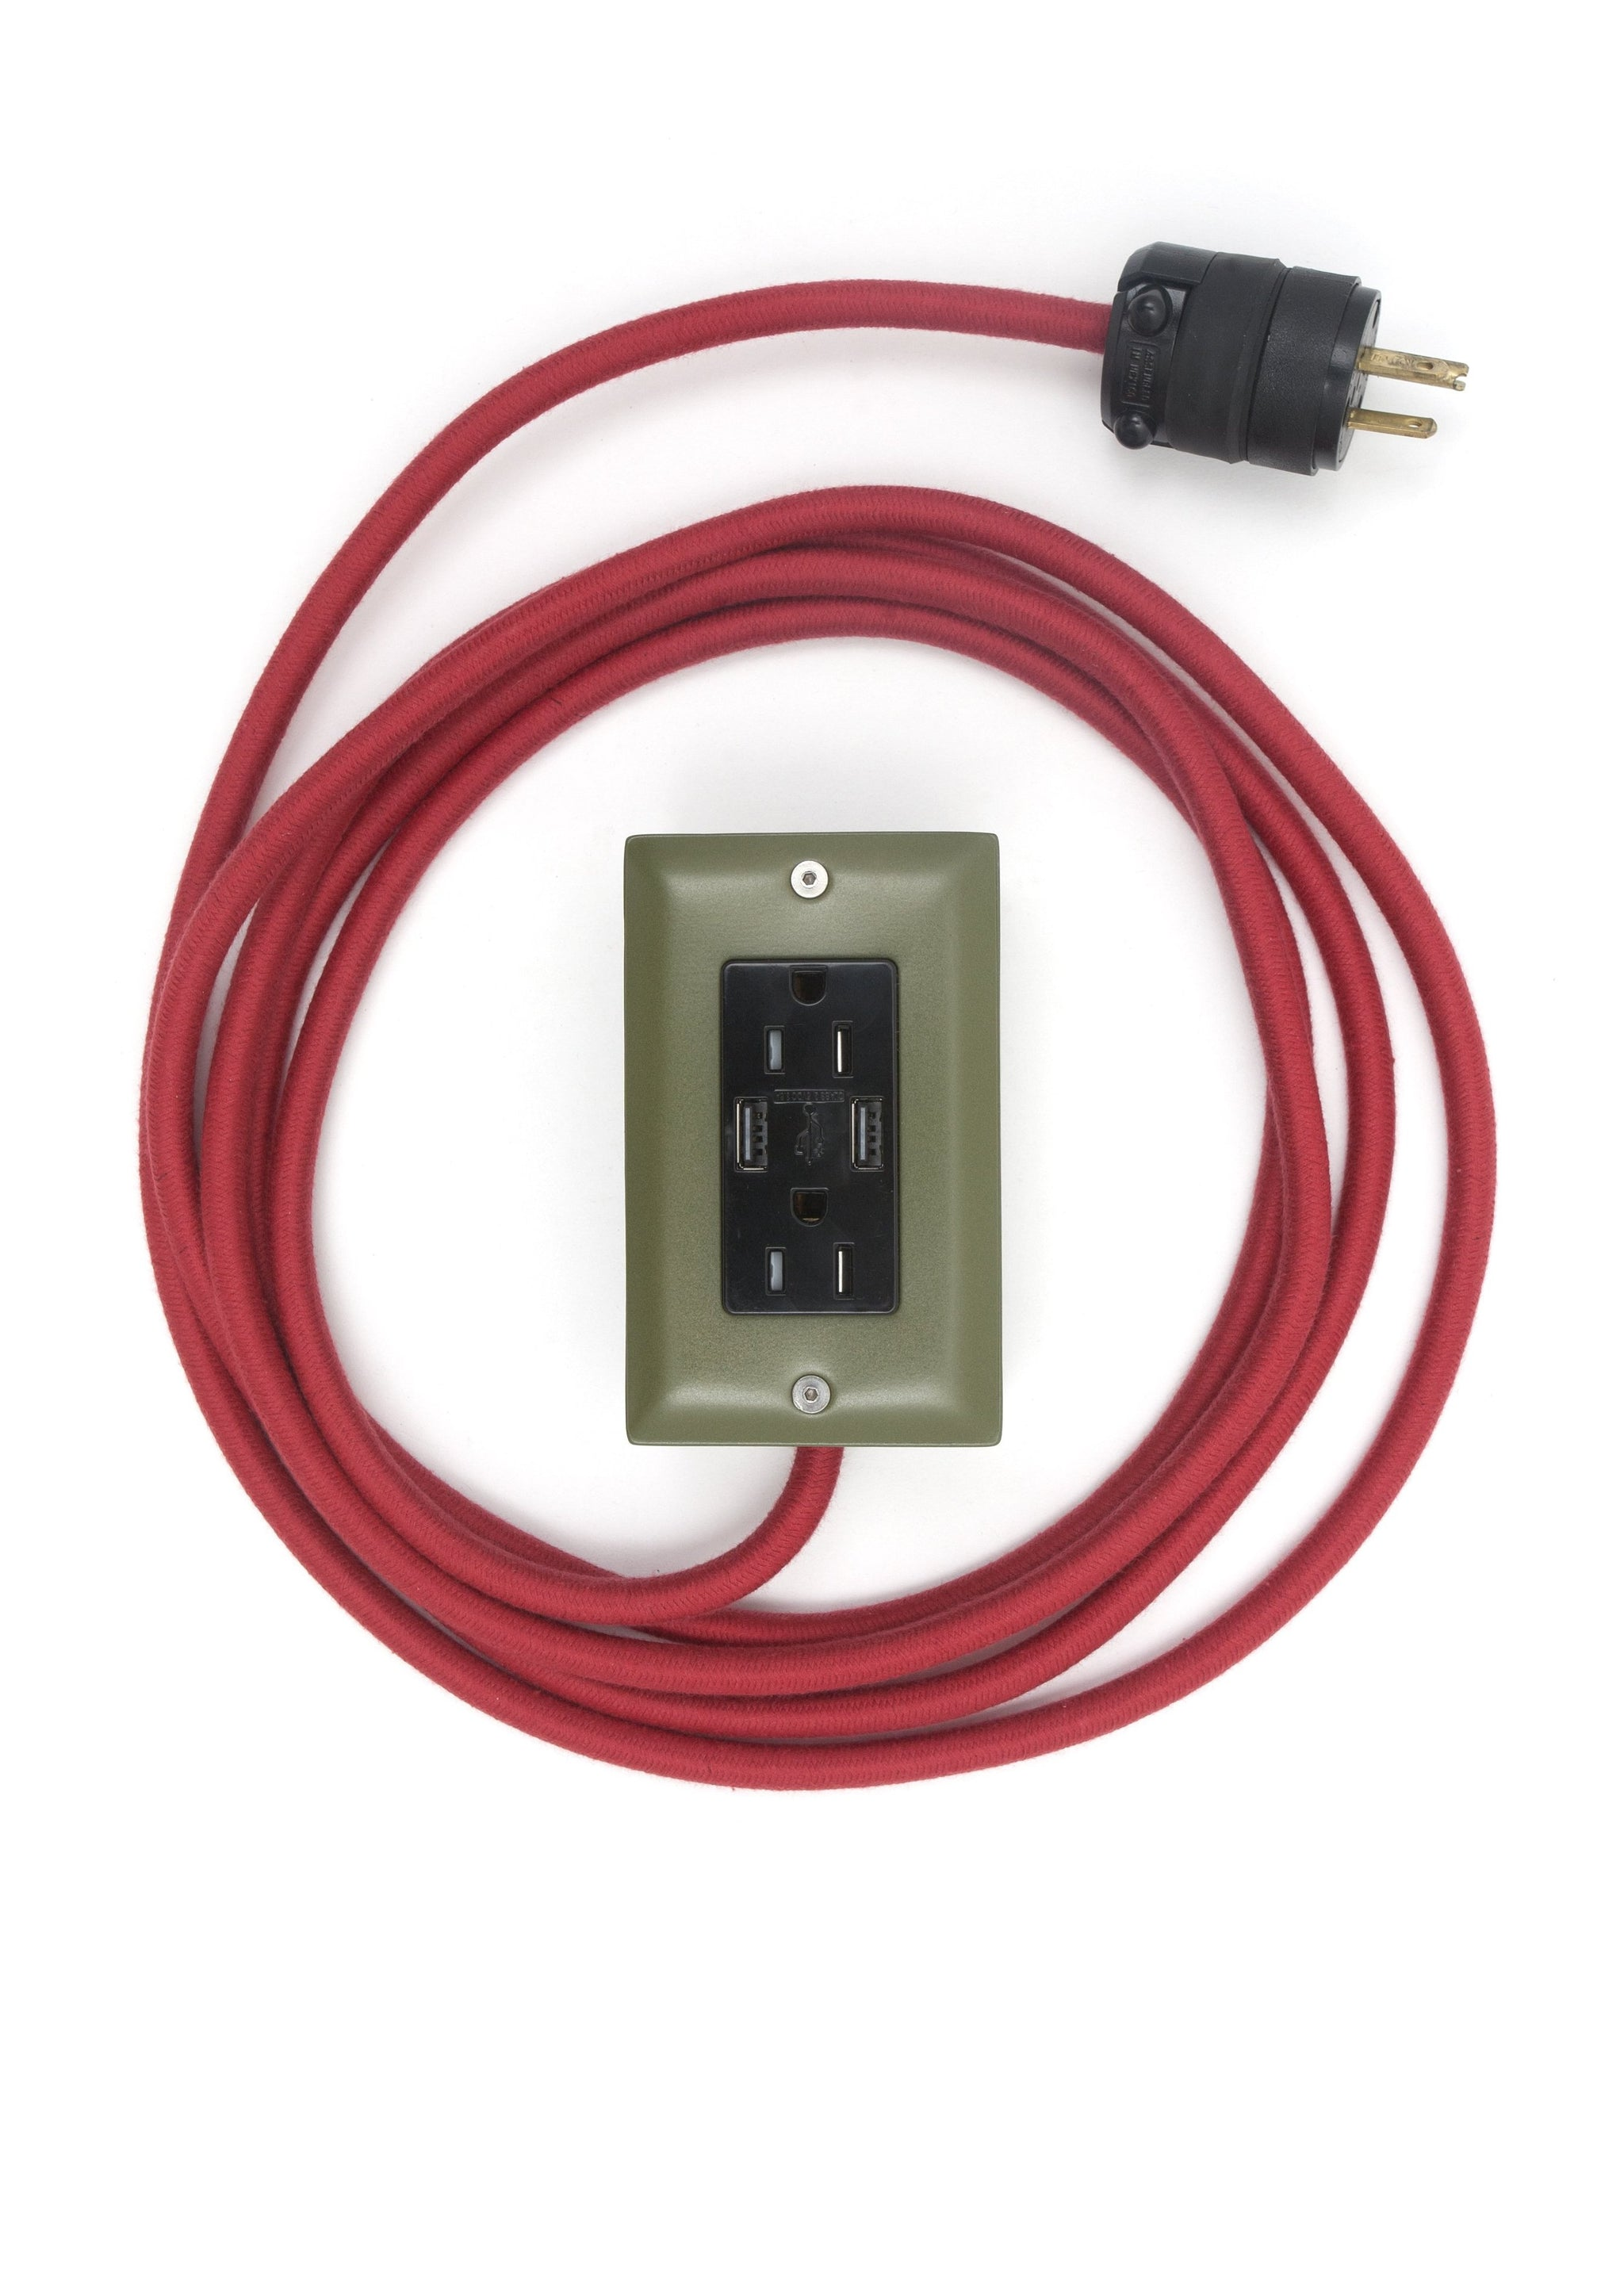 The First Smart Chip Extension Cord - 12' Extō Dual-USB, Dual-Outlet - 4077th Green